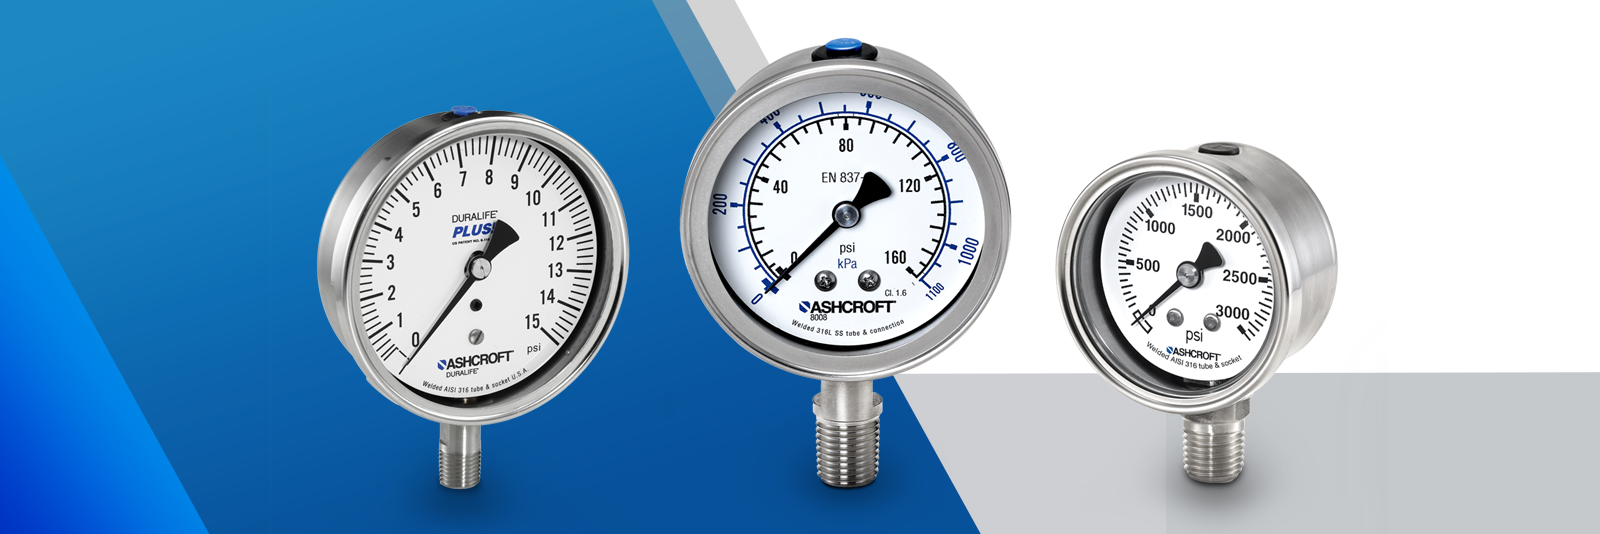 How Do I Select the Right Pressure Gauge Range?